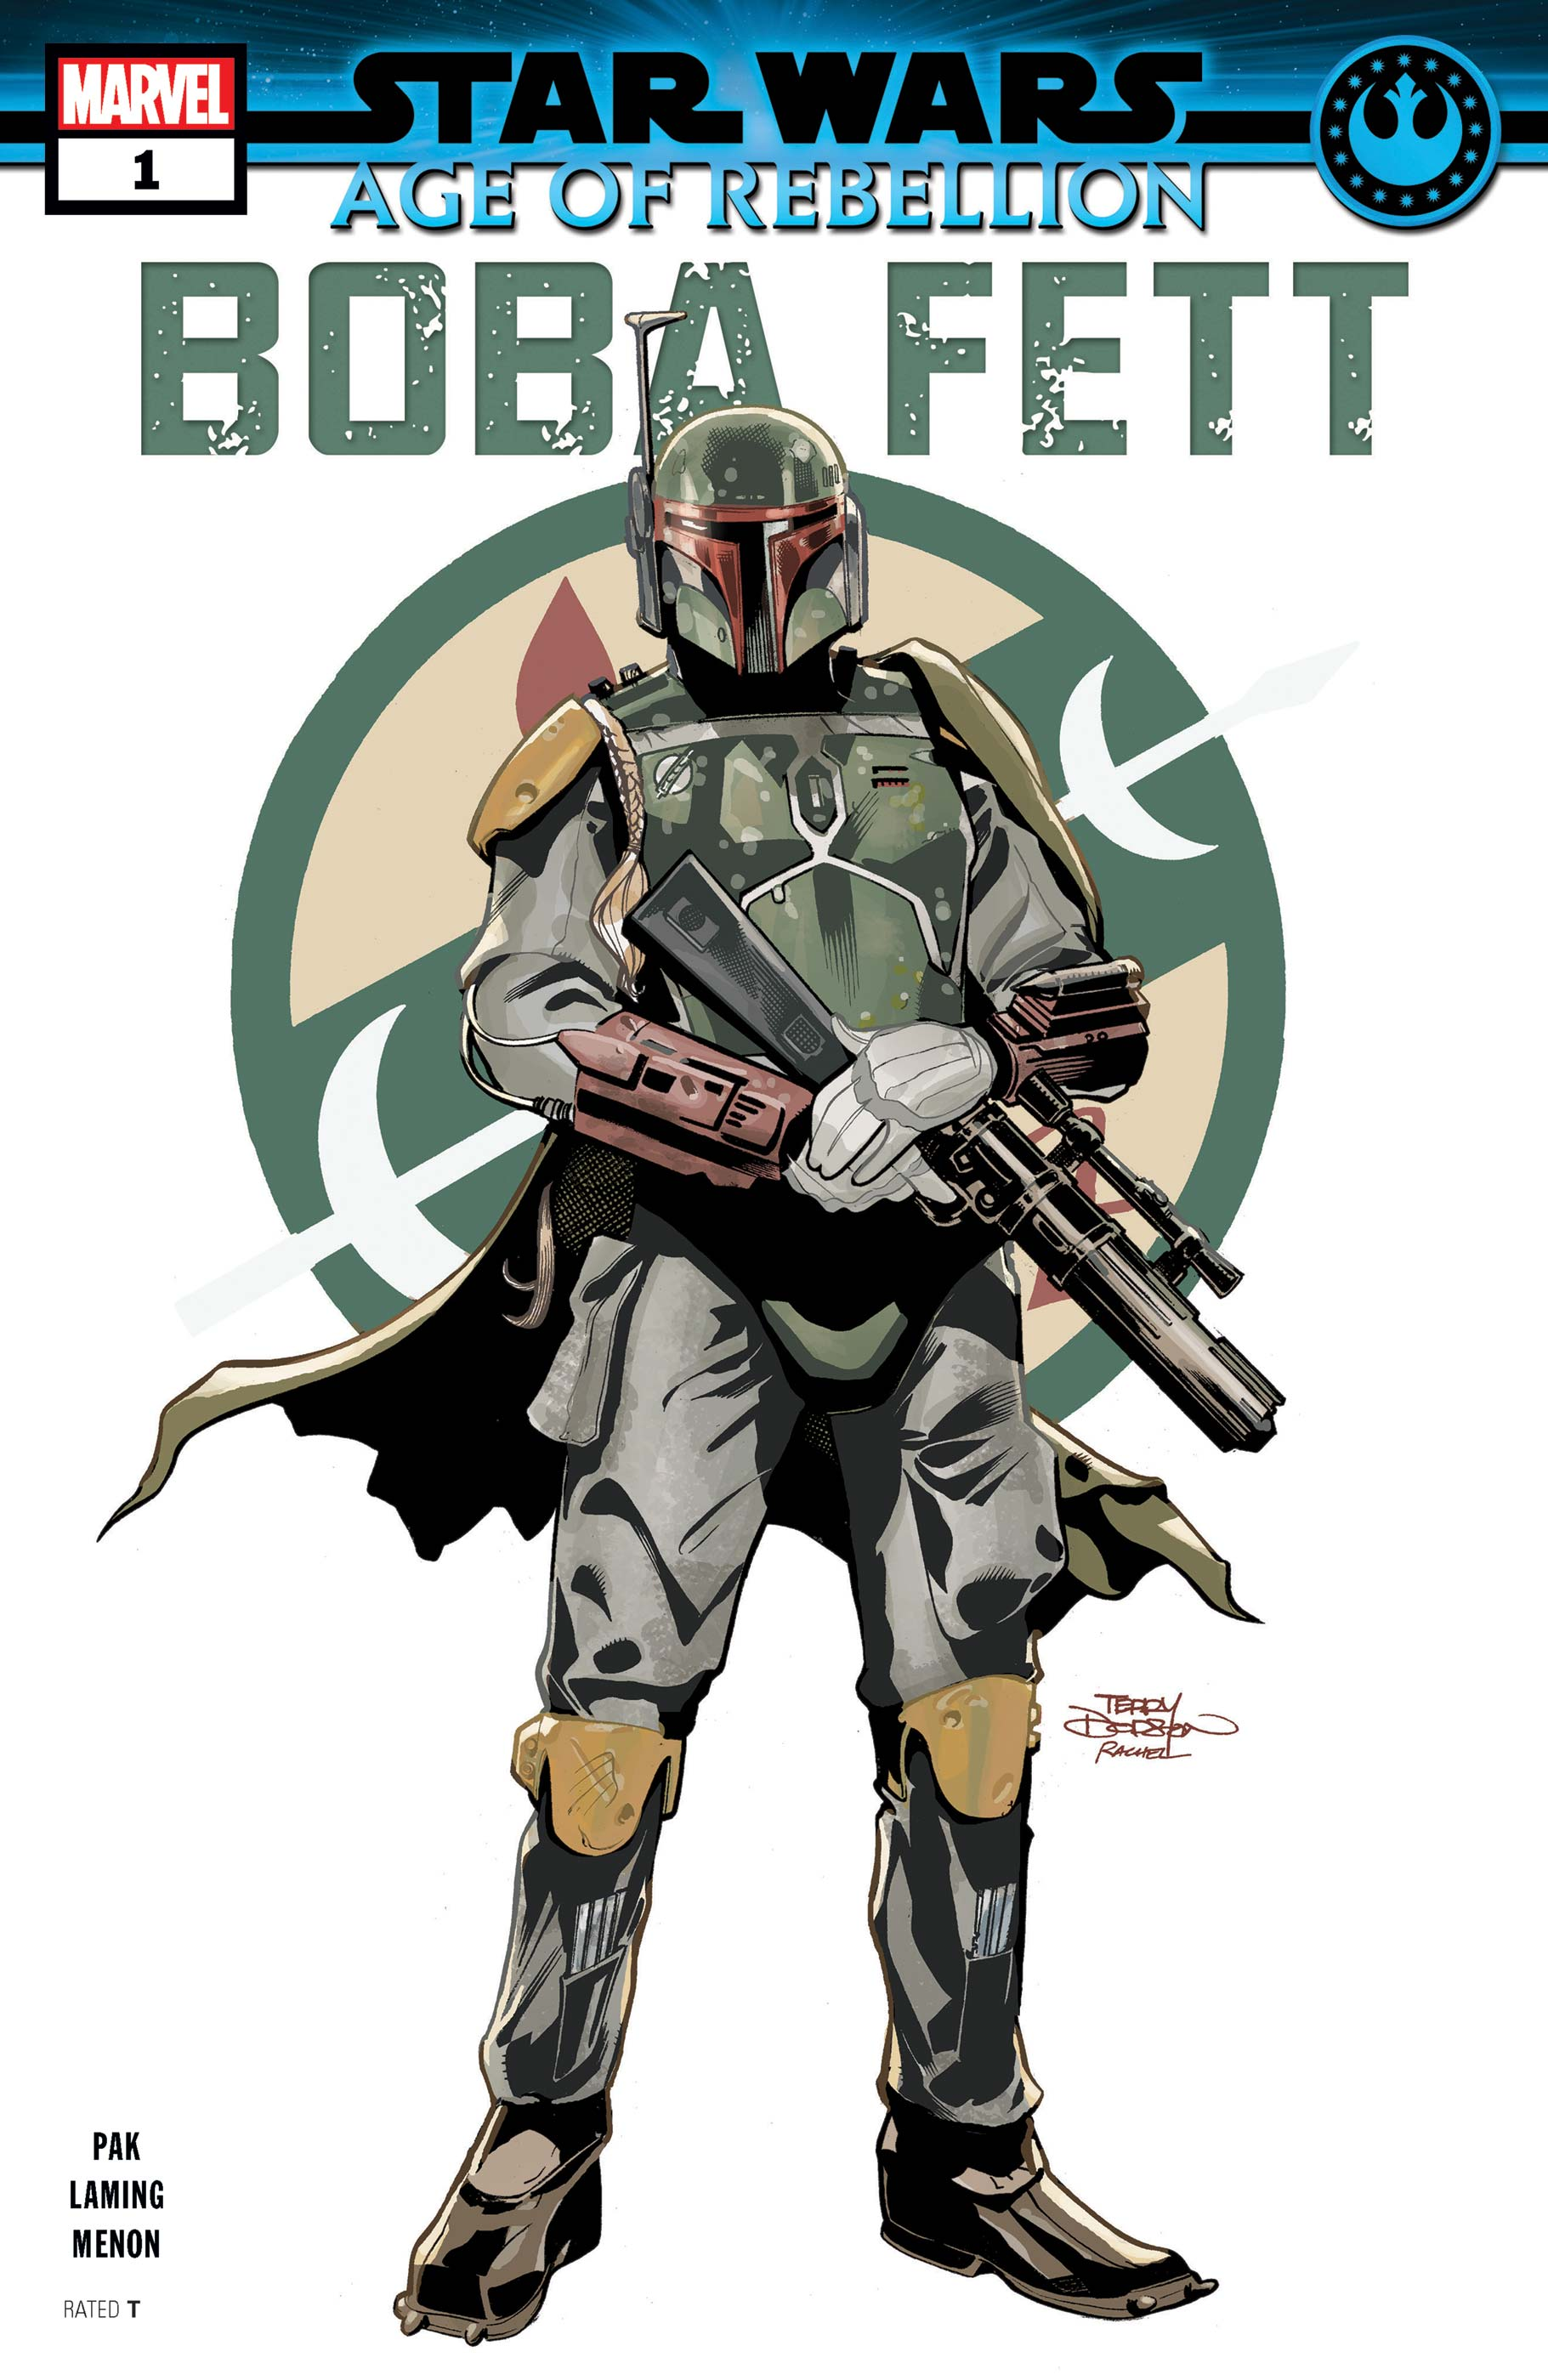 05/08/2019 STAR WARS AGE OF REPUBLIC BOBA FETT #1